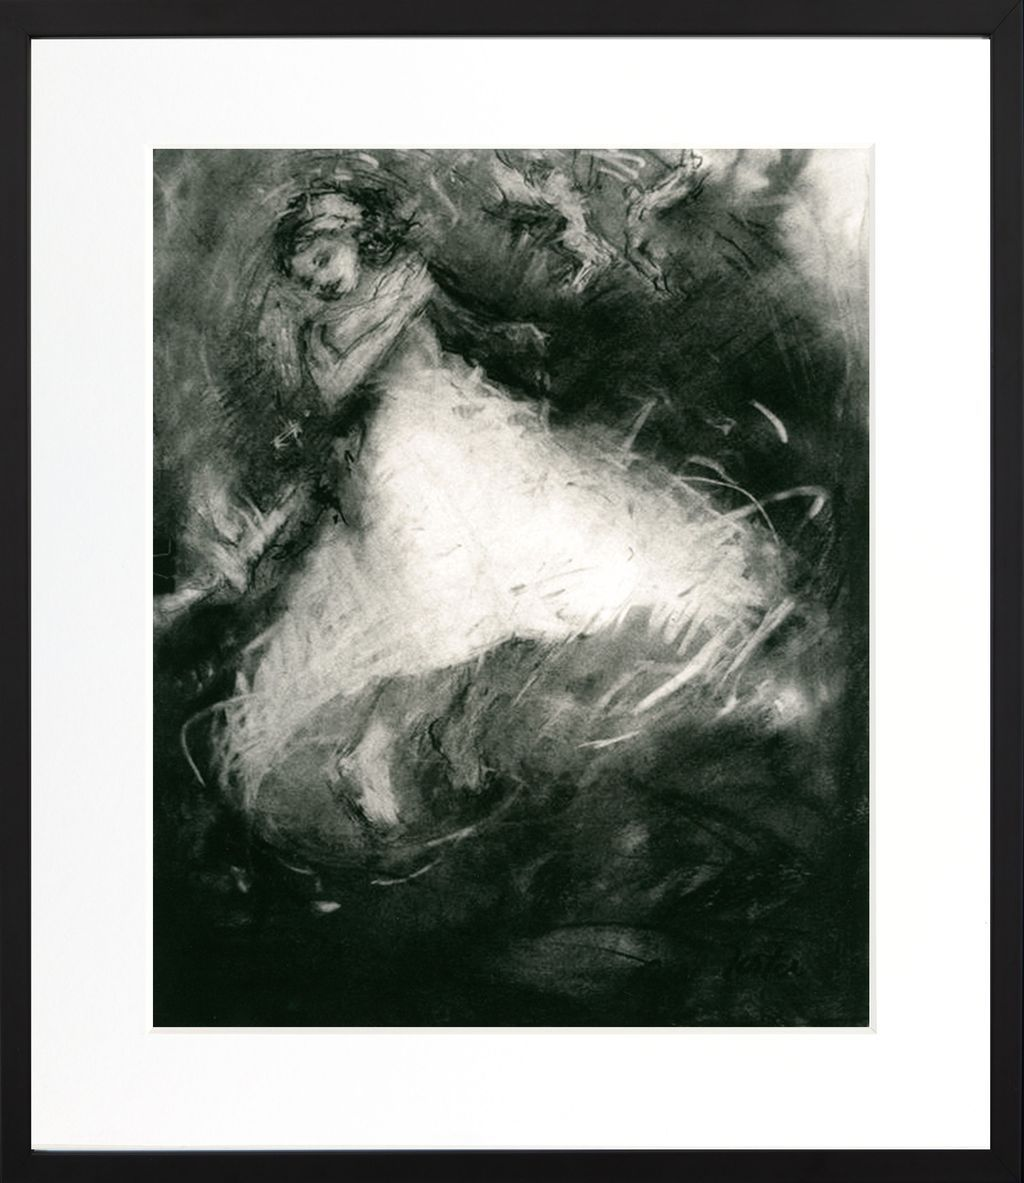 """From Within"" Gail Foster, Limited Edition Prints"